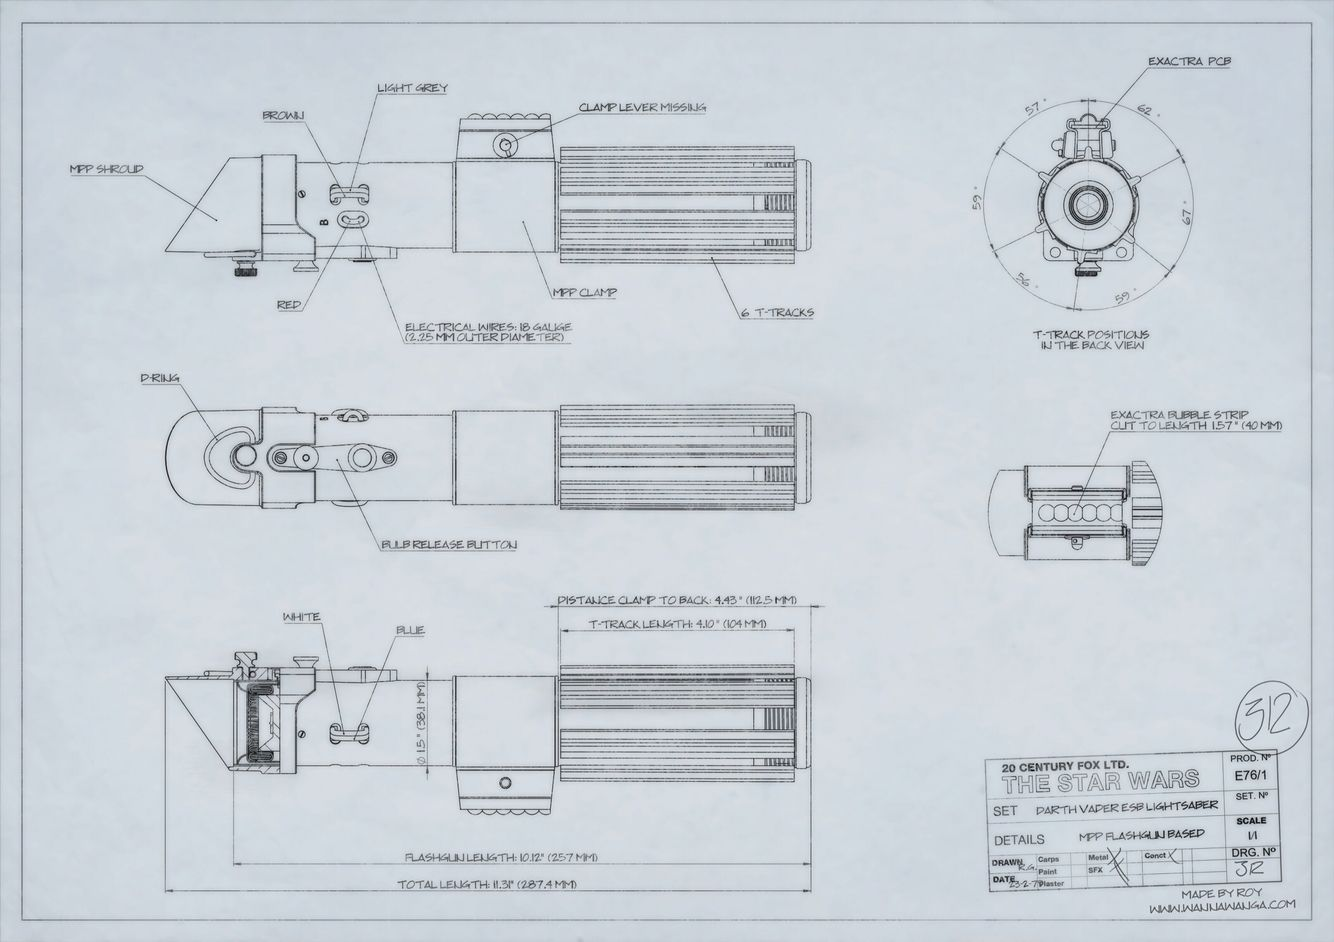 small resolution of  darth vader esb lightsaber blueprint wannawanga com blueprints on light wiring diagram